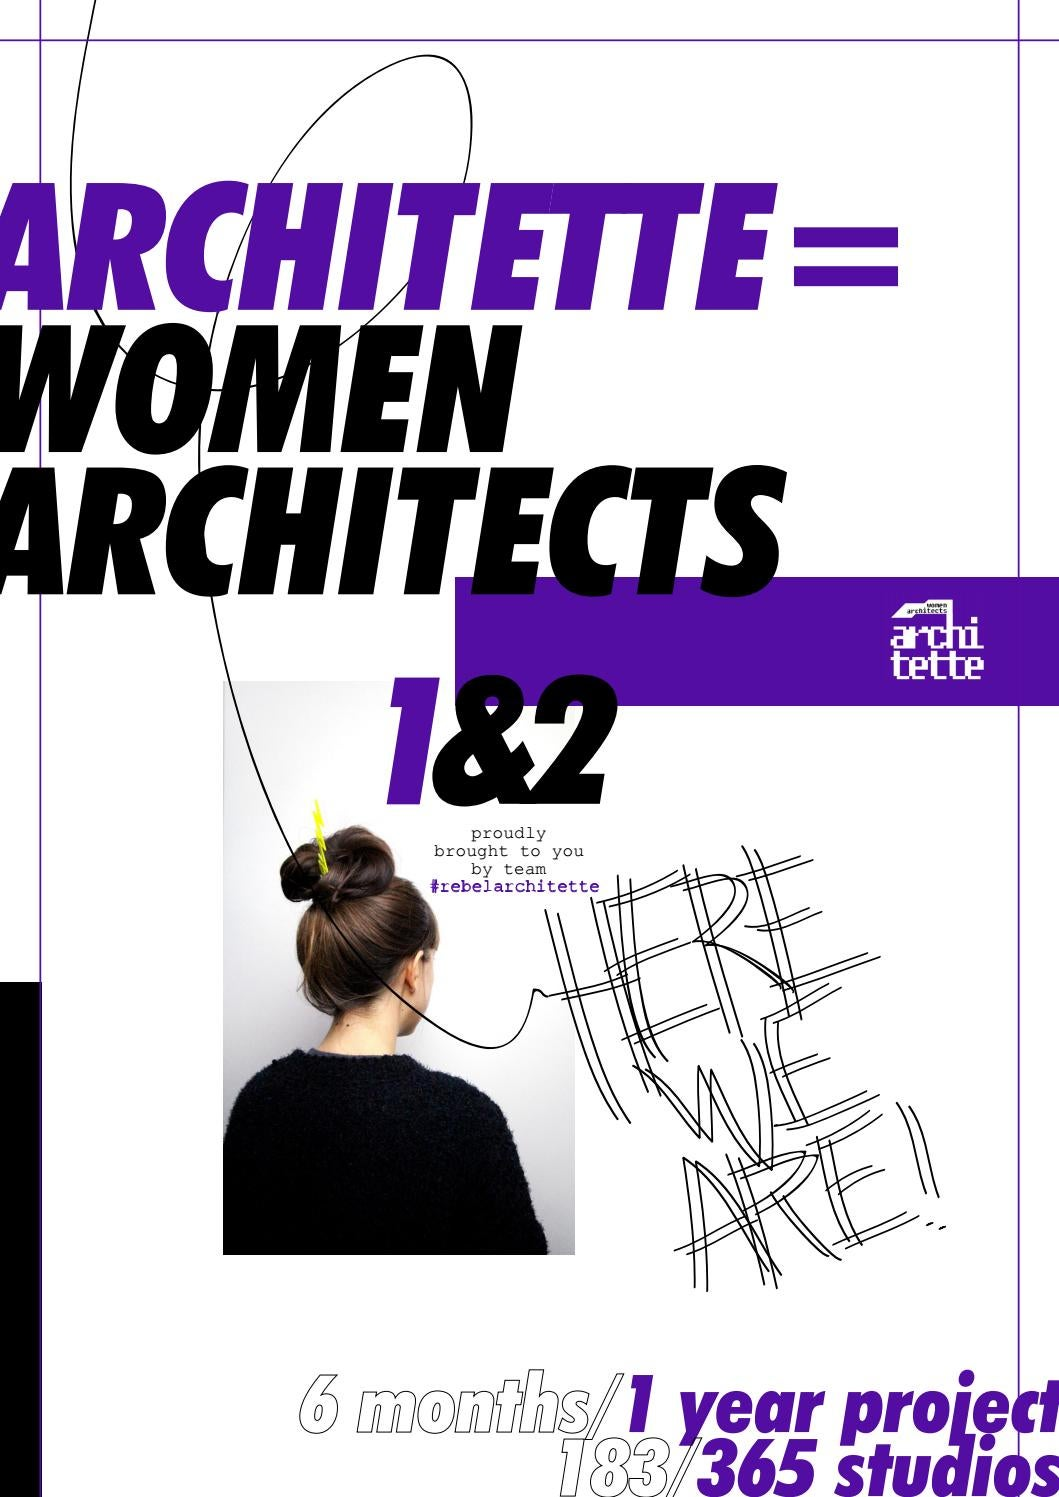 Architette=women architects here we are! 1 by rebelarchitette - issuu